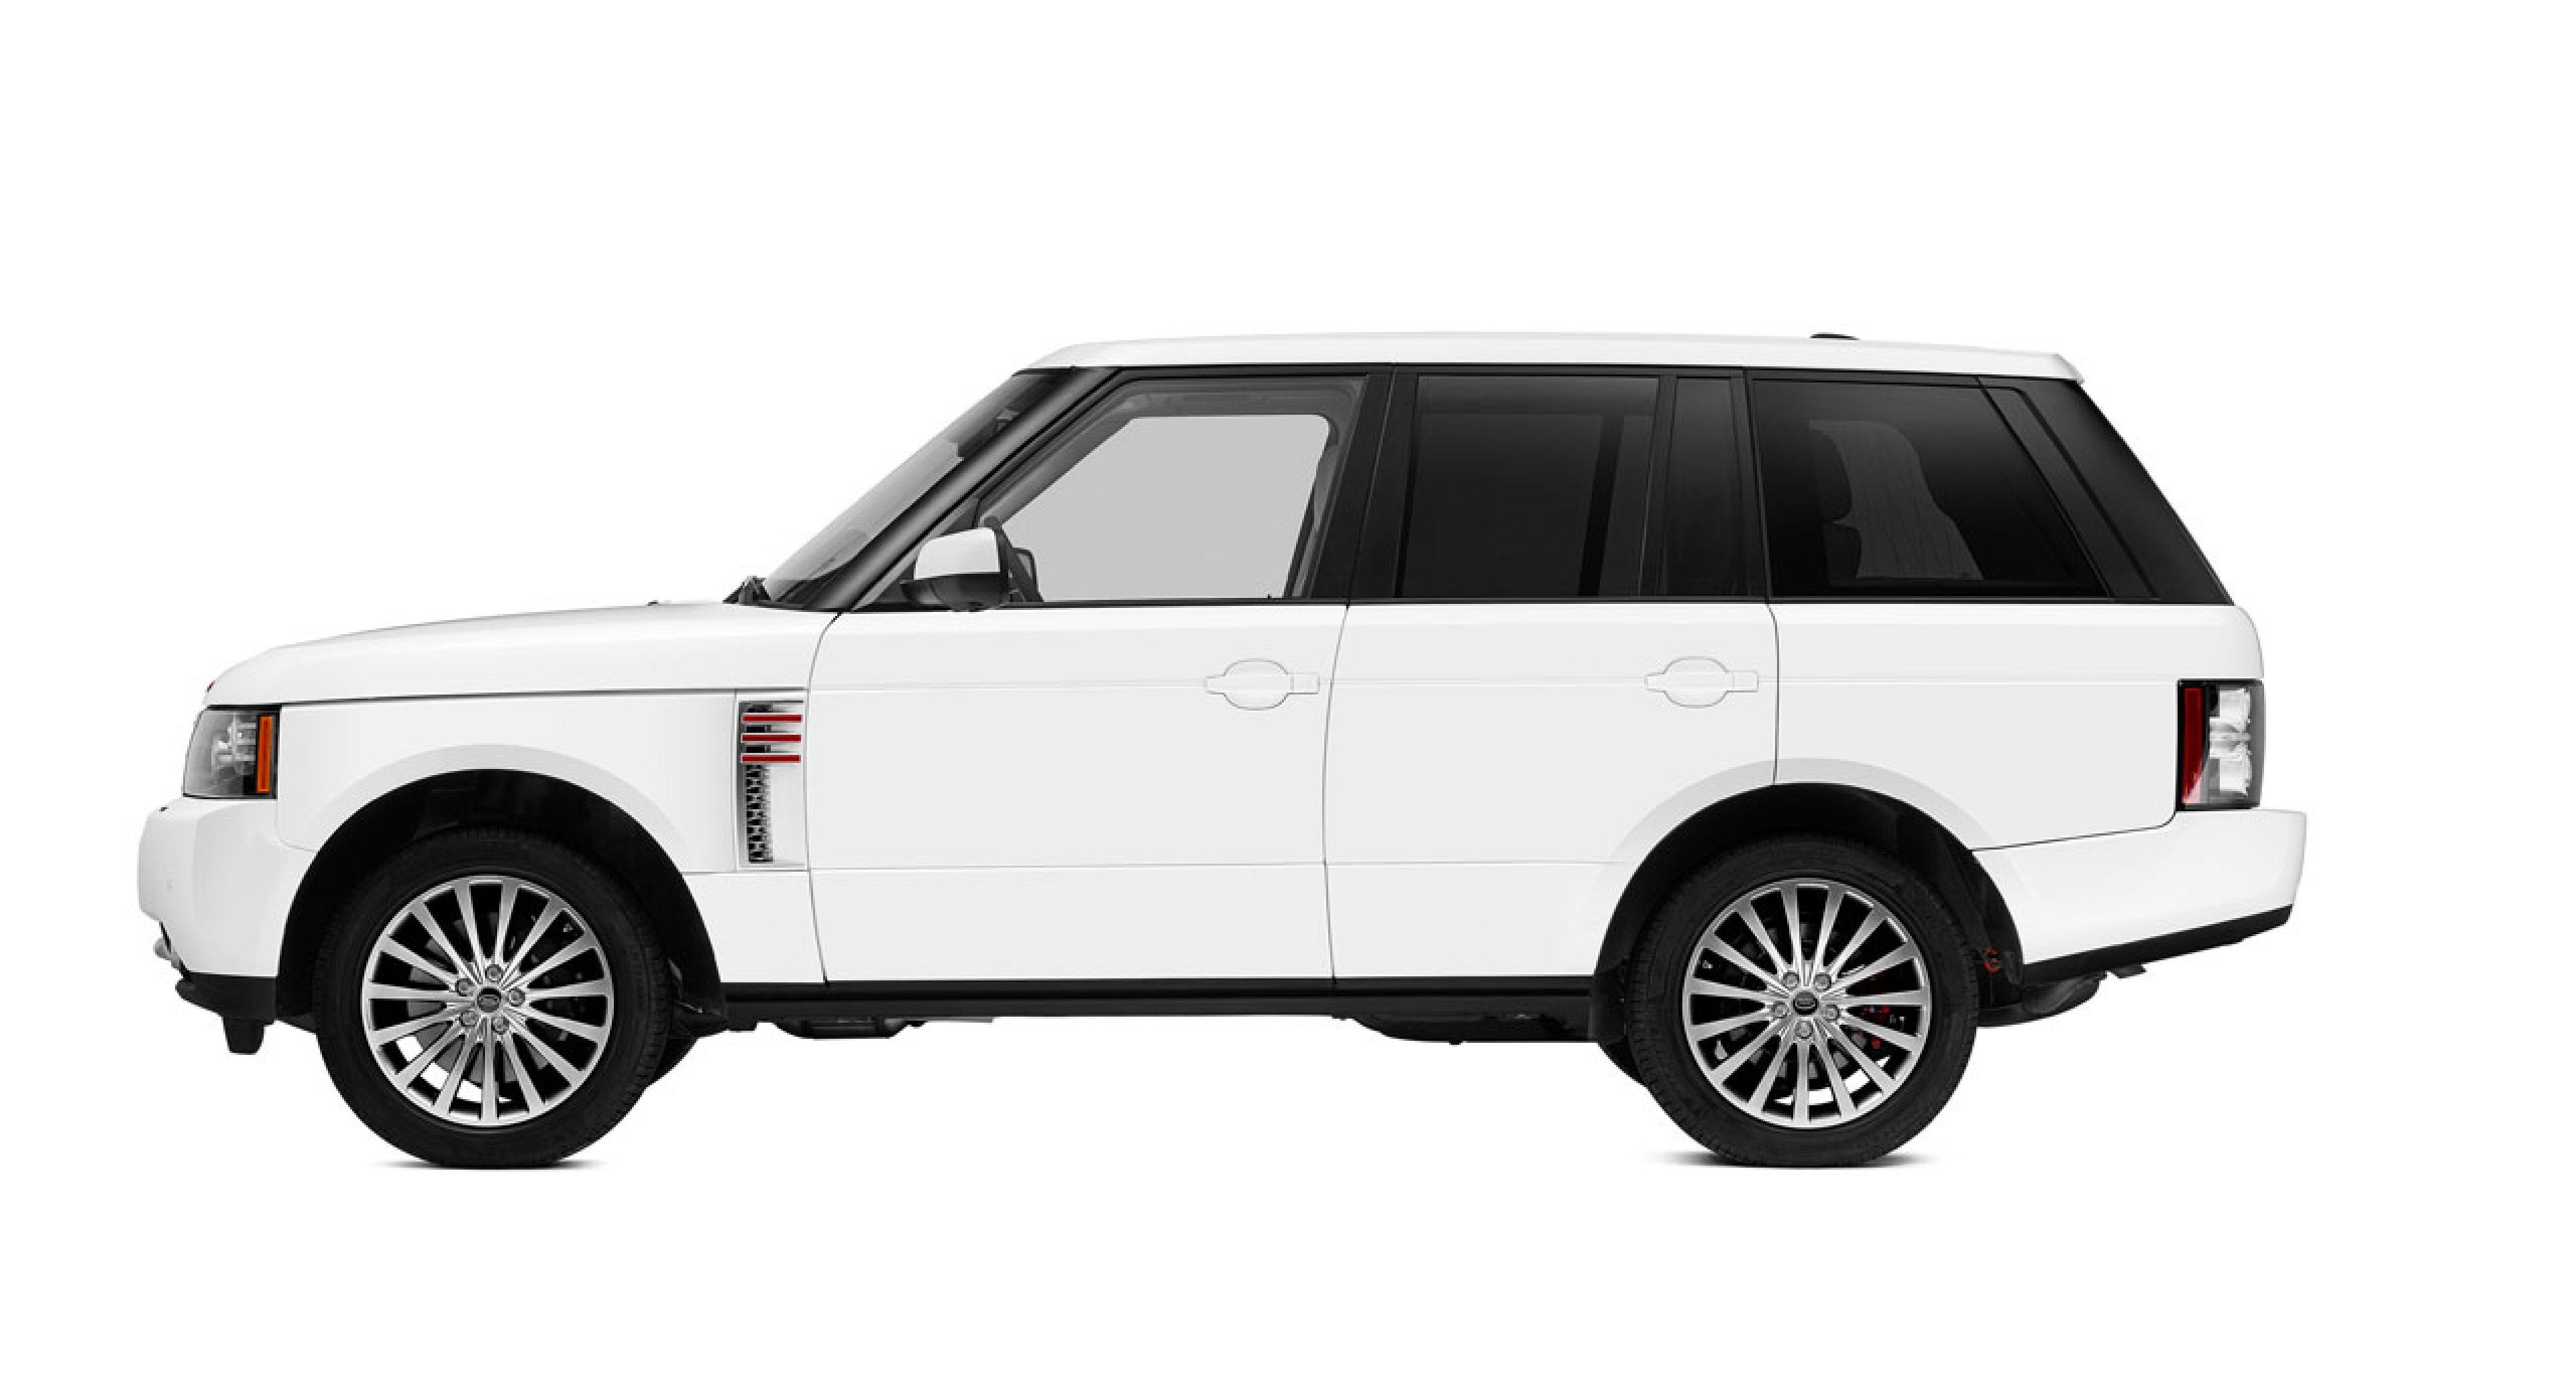 Special designed Range Rover by Marc Newson for the Sotheby's Red Charitiy Auction